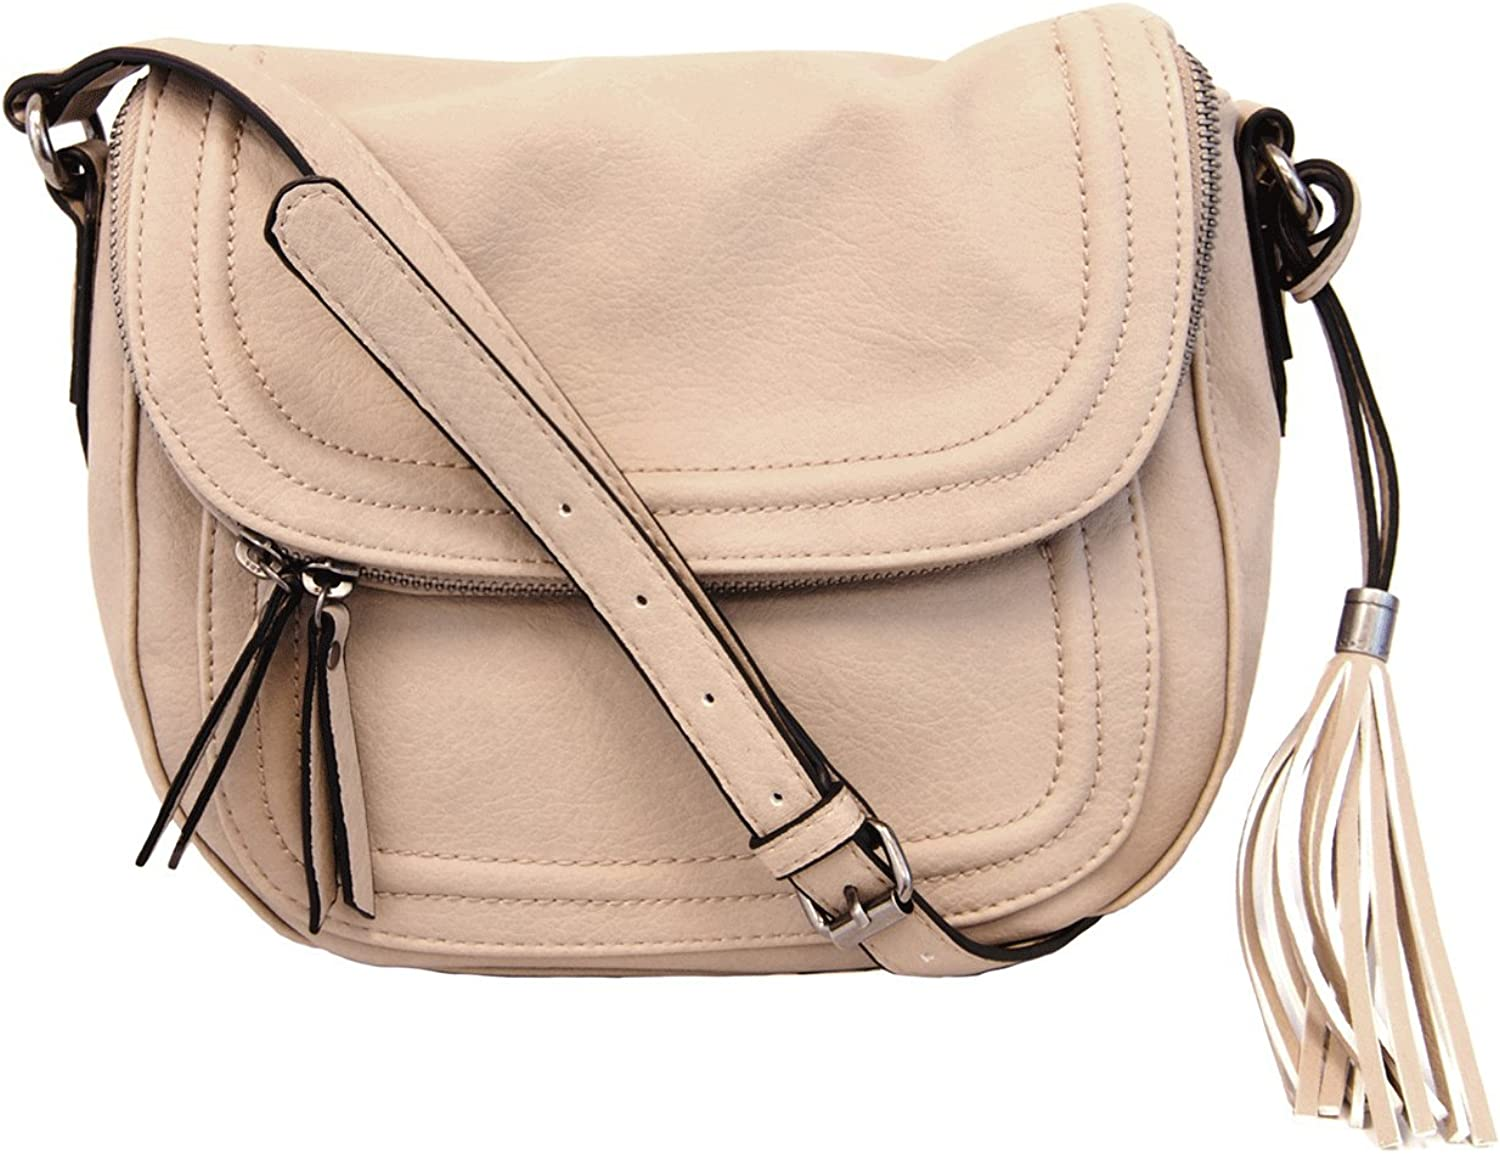 Joy Susan Sophia Crossbody Zippered Flap Bag with Tassel